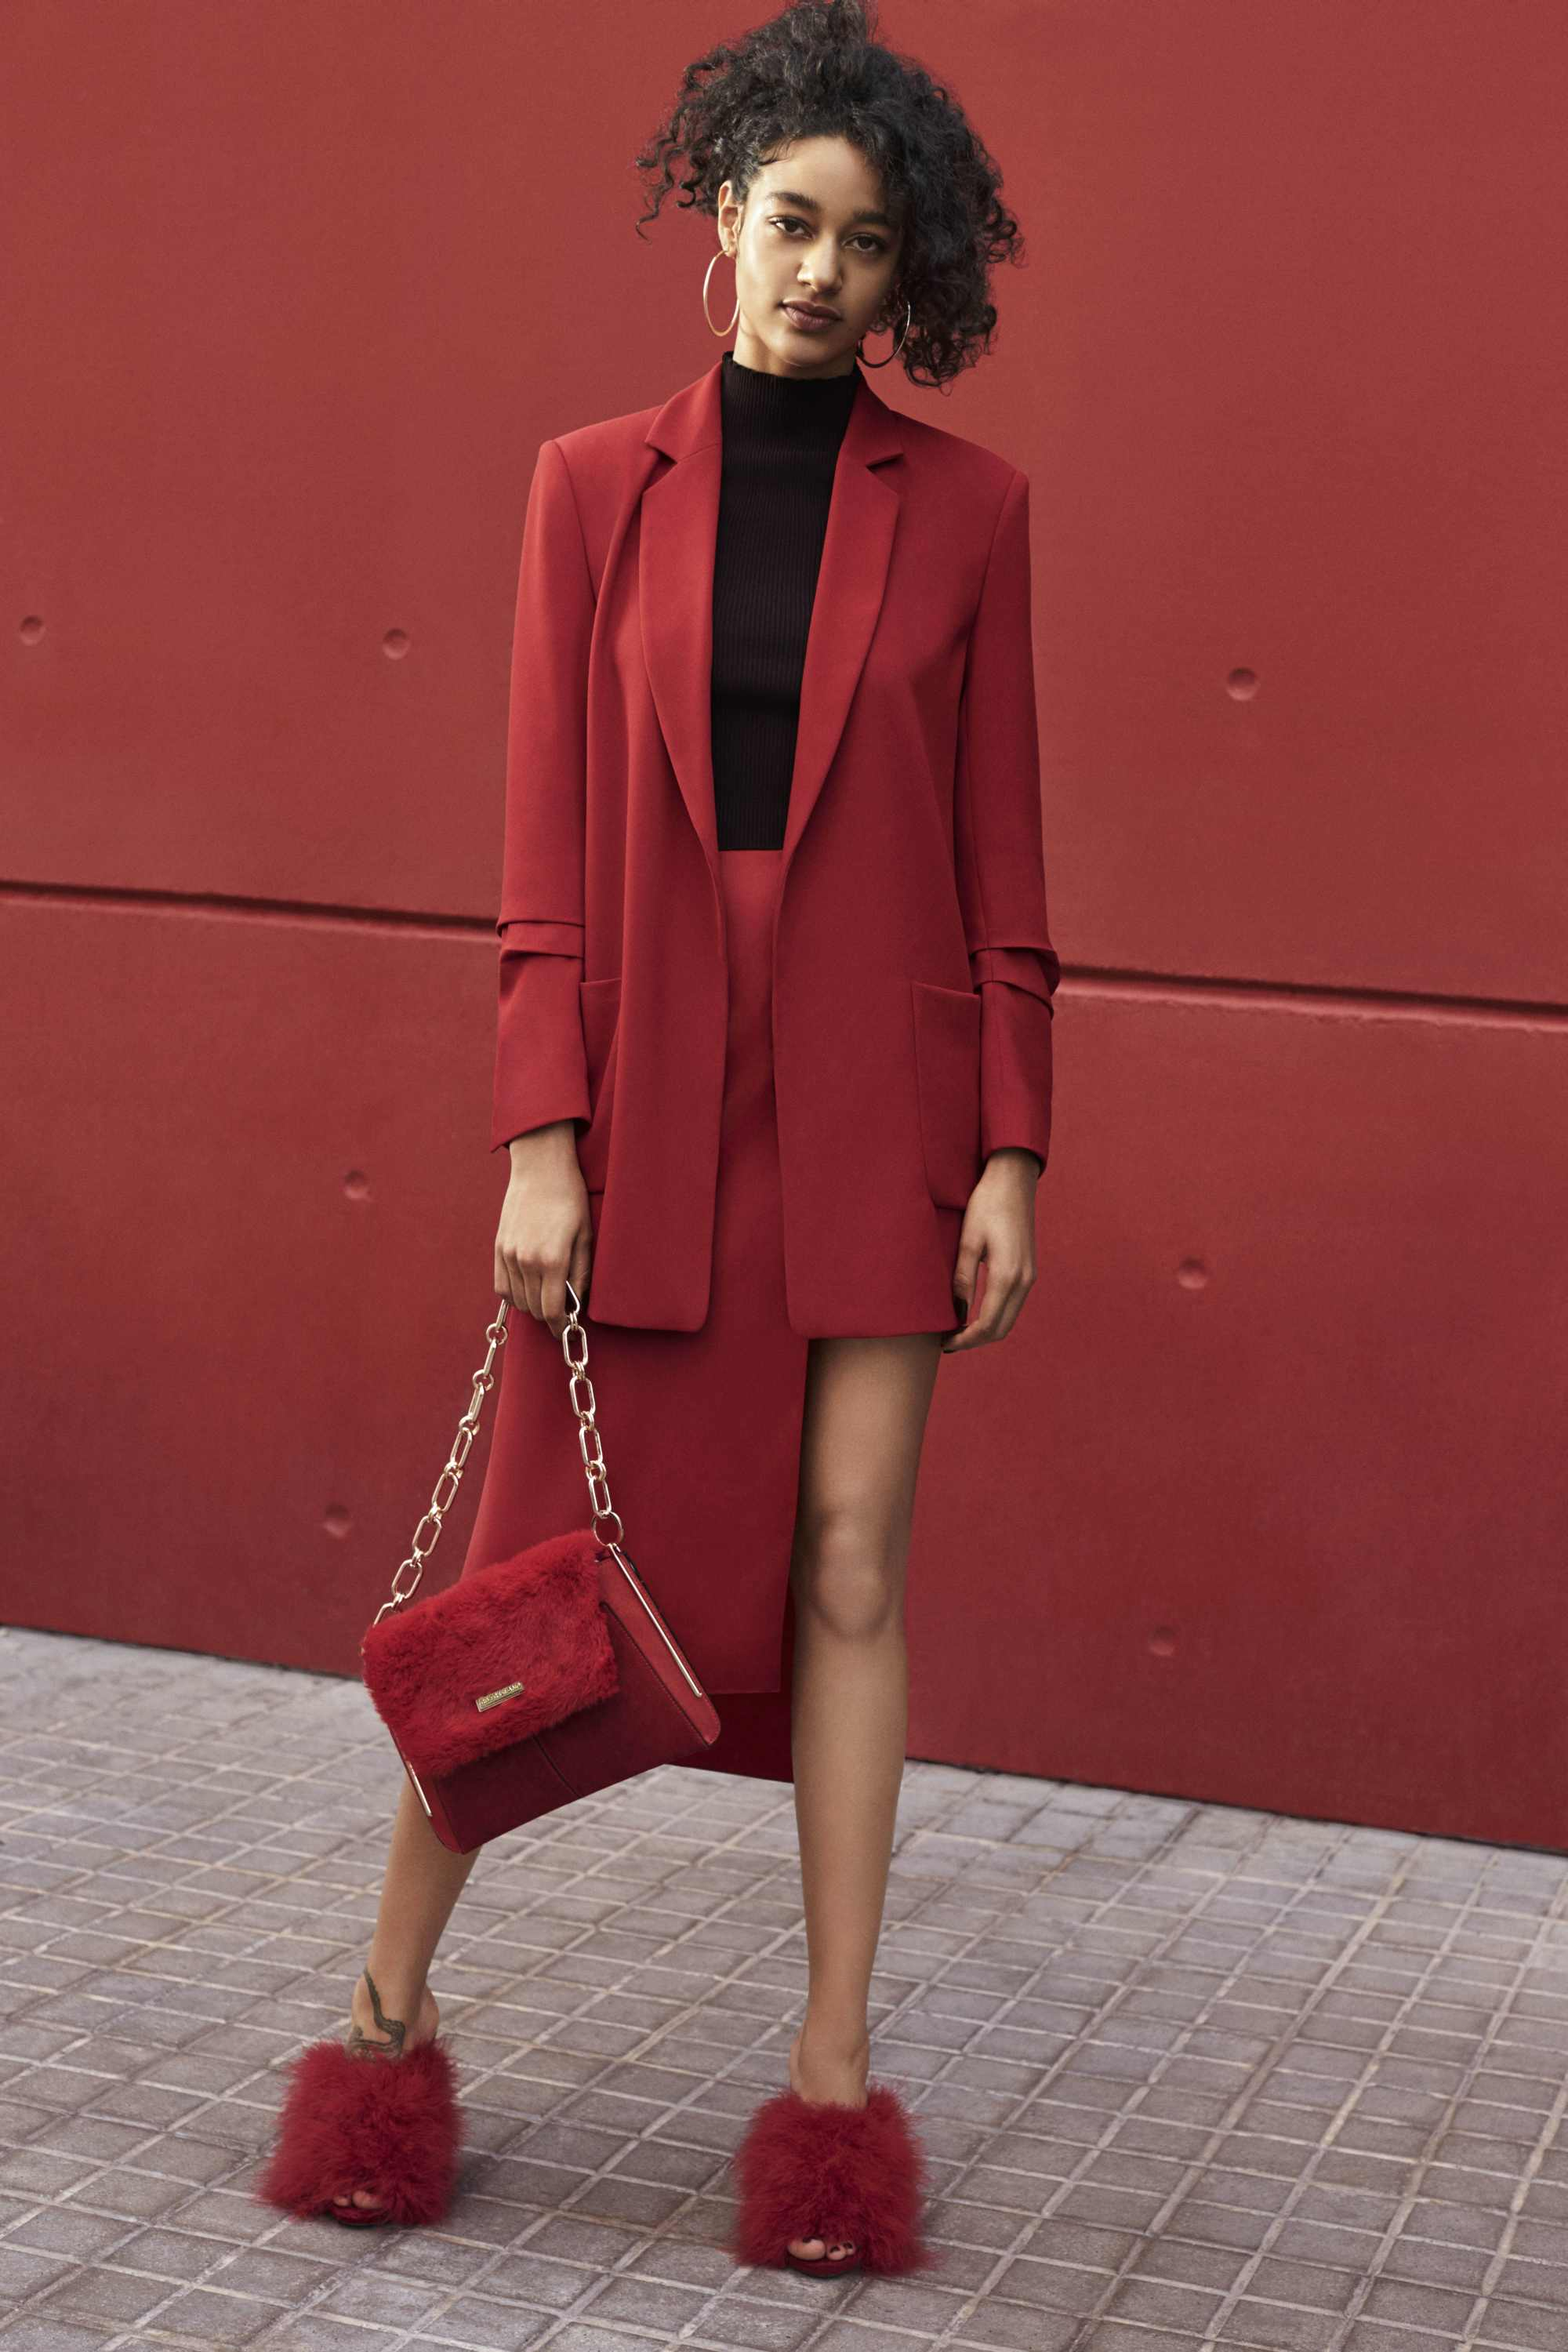 River Island Blazer, £38; Skirt, £35; Bag, £28; Shoes, £65